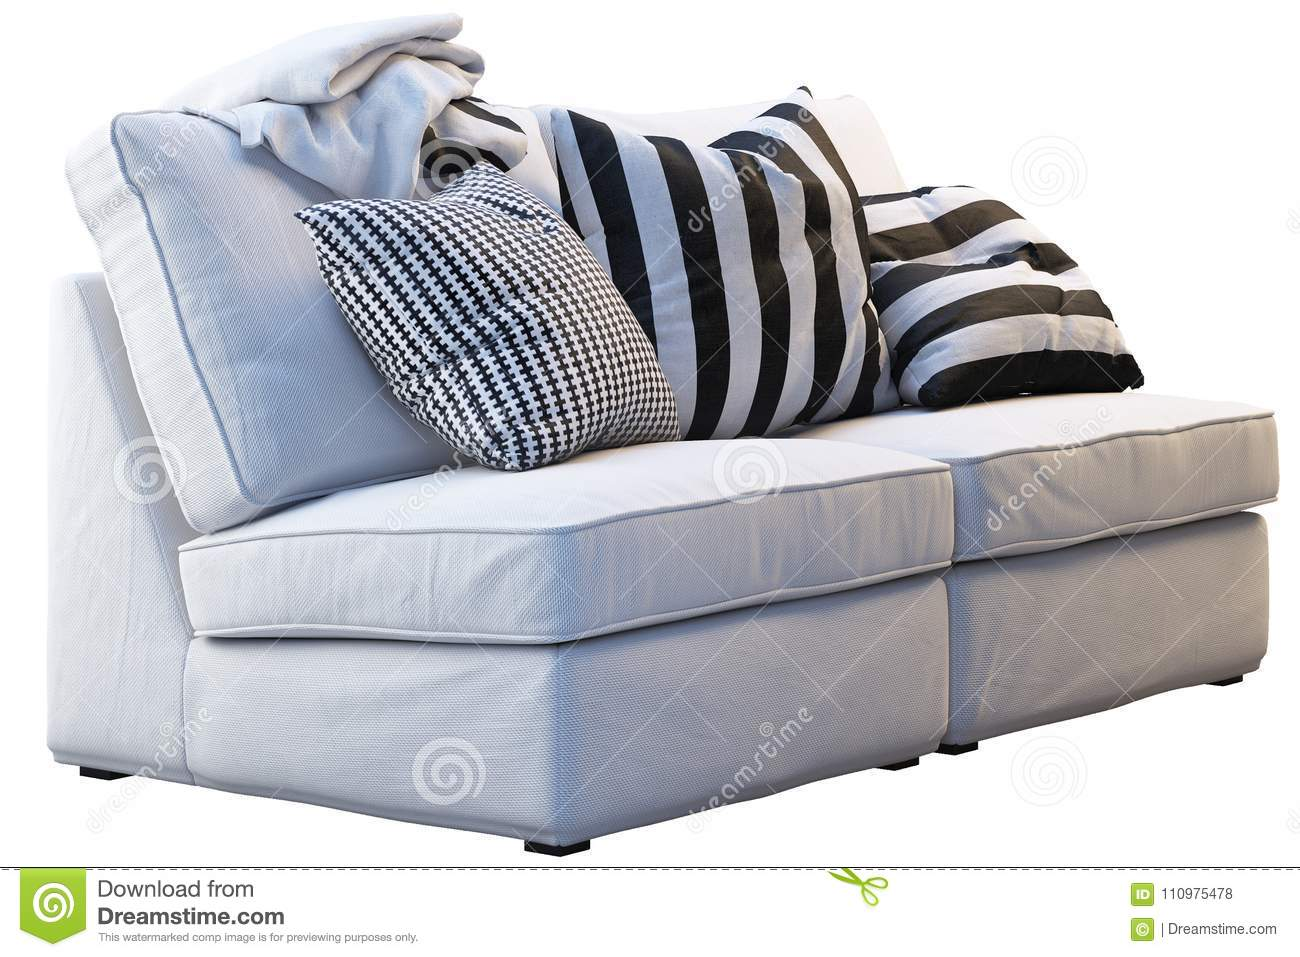 Ikea Kivik Sofa With Plaids And Pillows Stock Photo Image Of